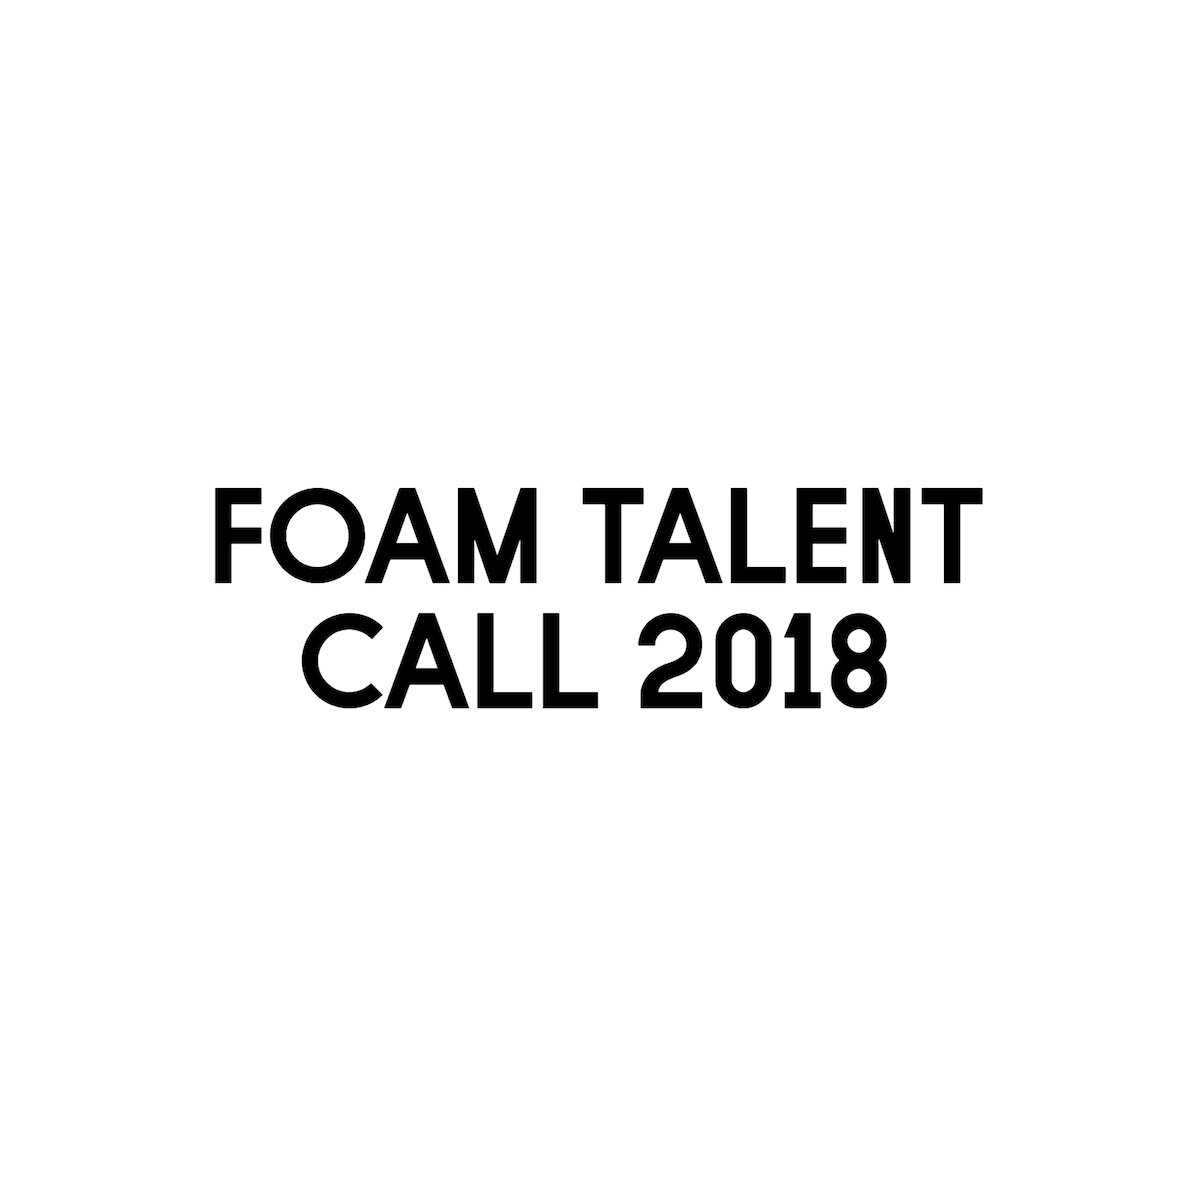 Foam Talent Call 2018